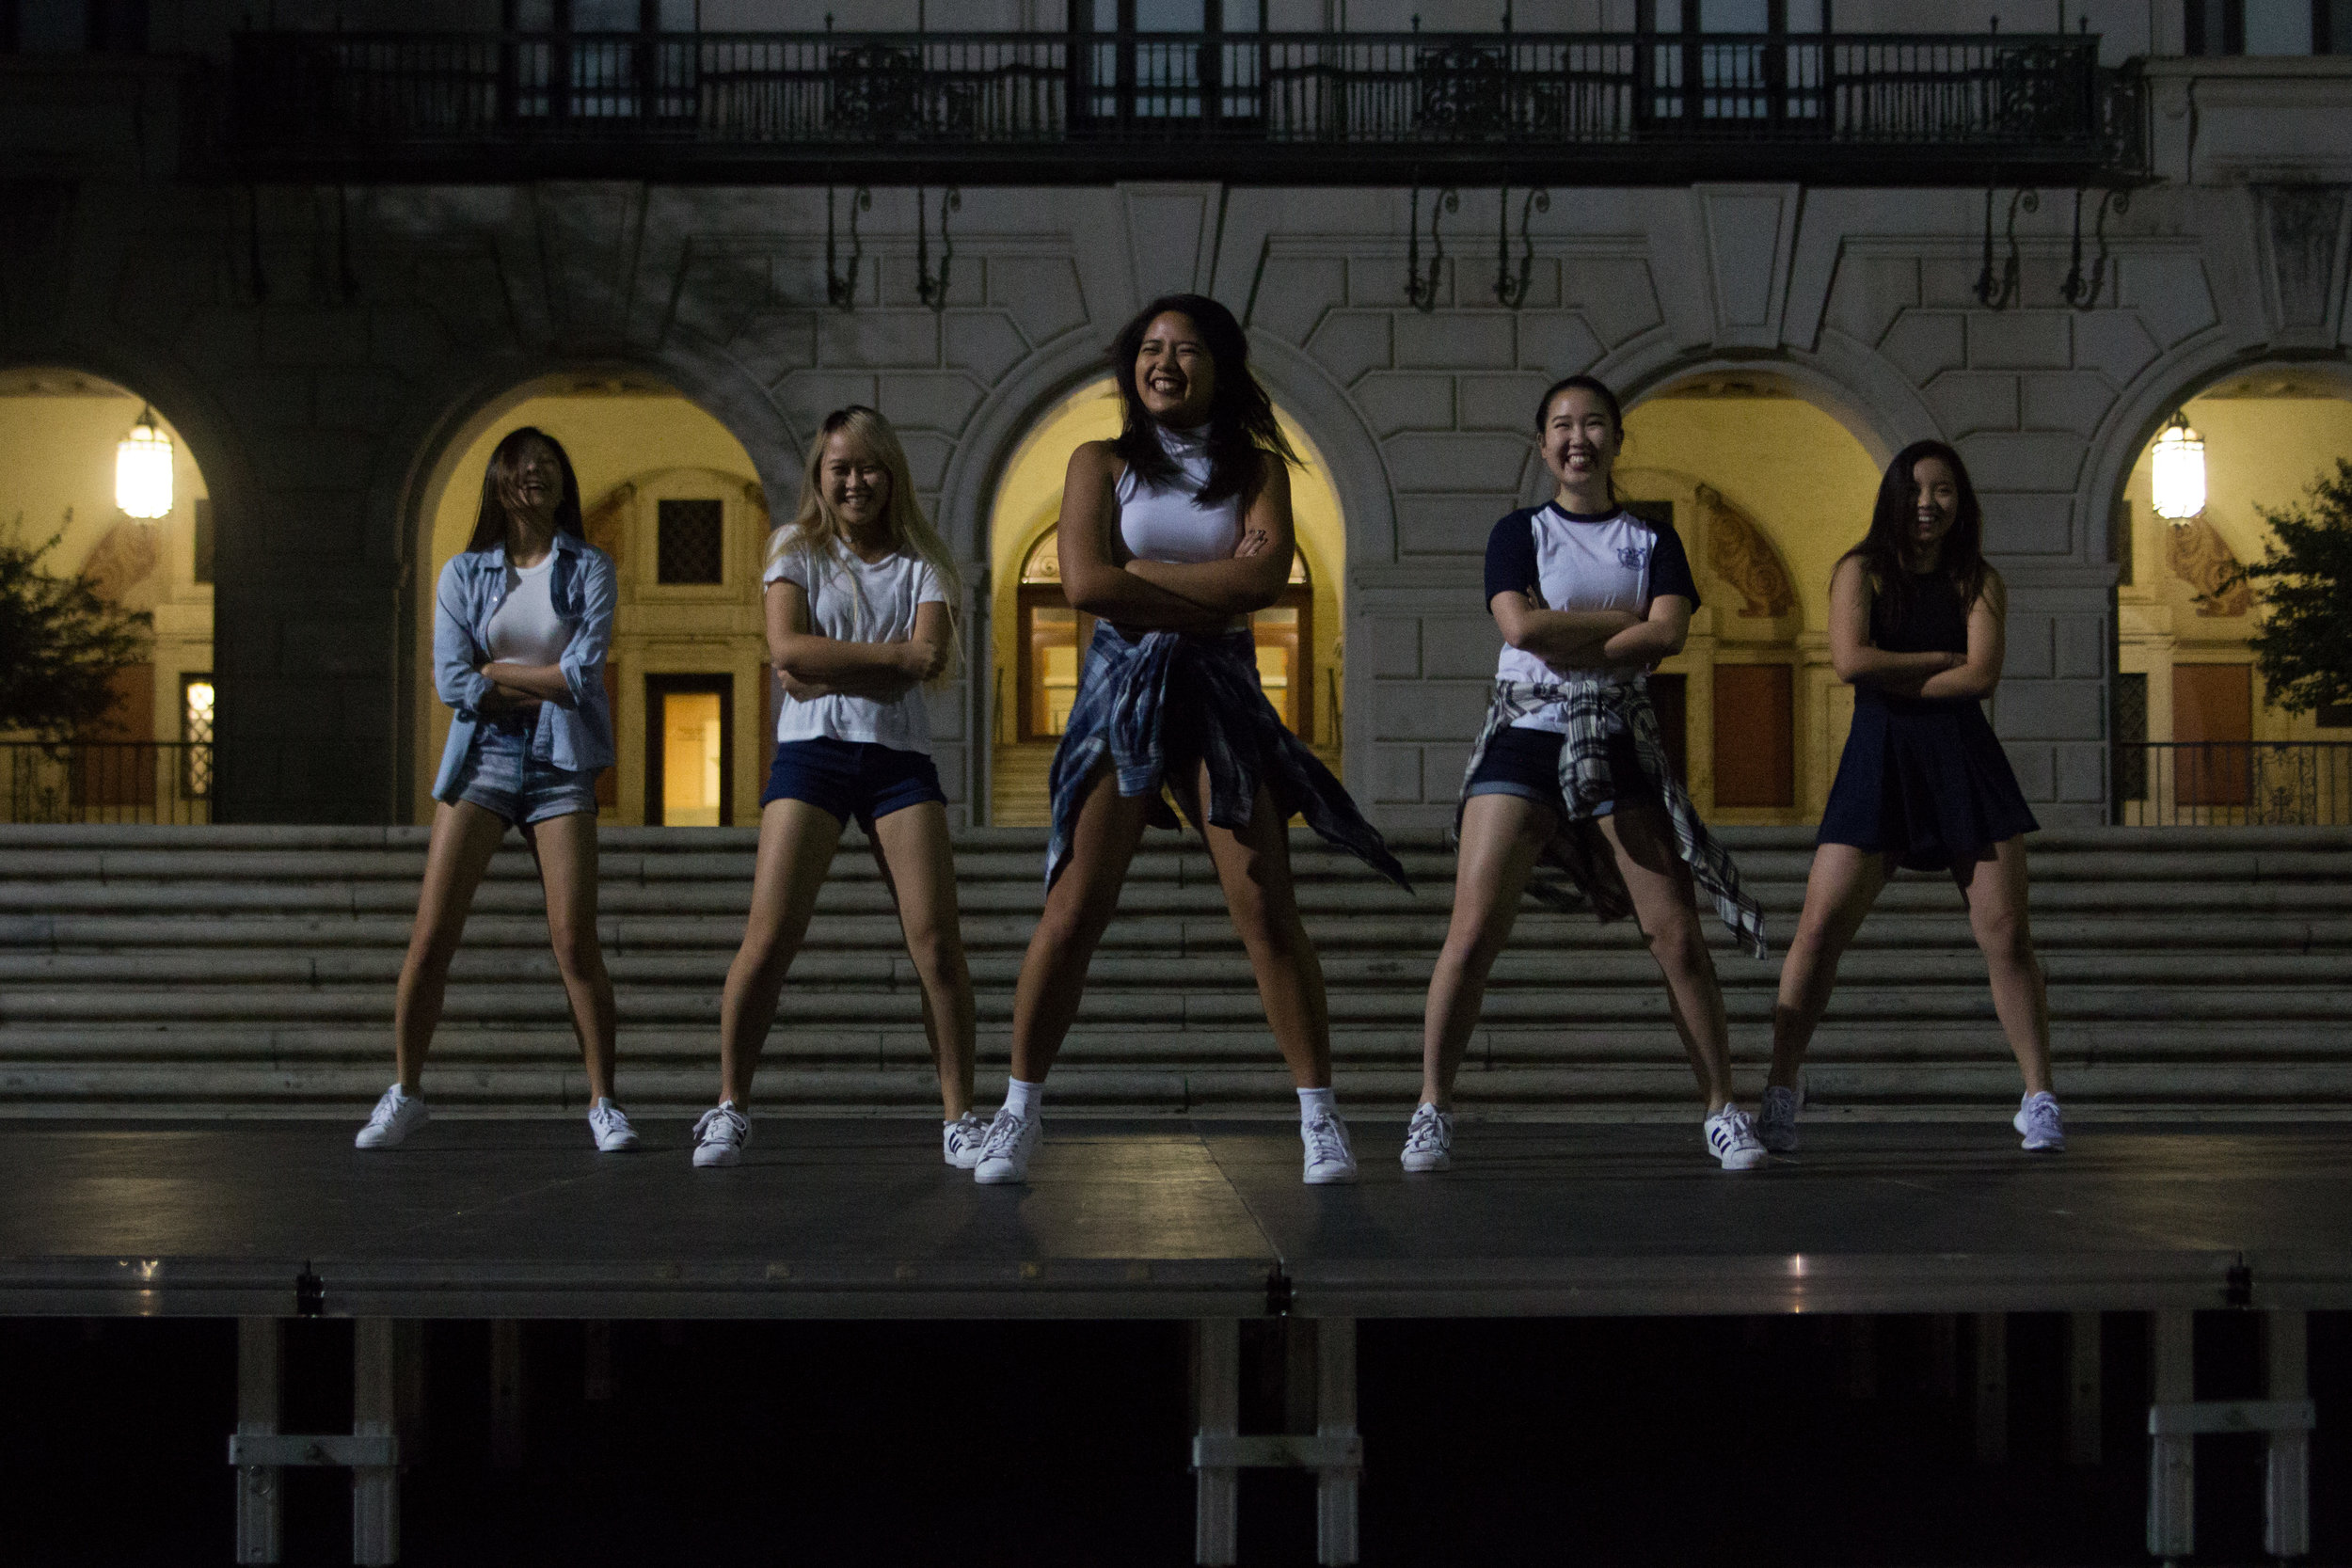 The Korean Dance Crew combined Korean Pop and hip-hop dance moves to create a fun and energetic performance.